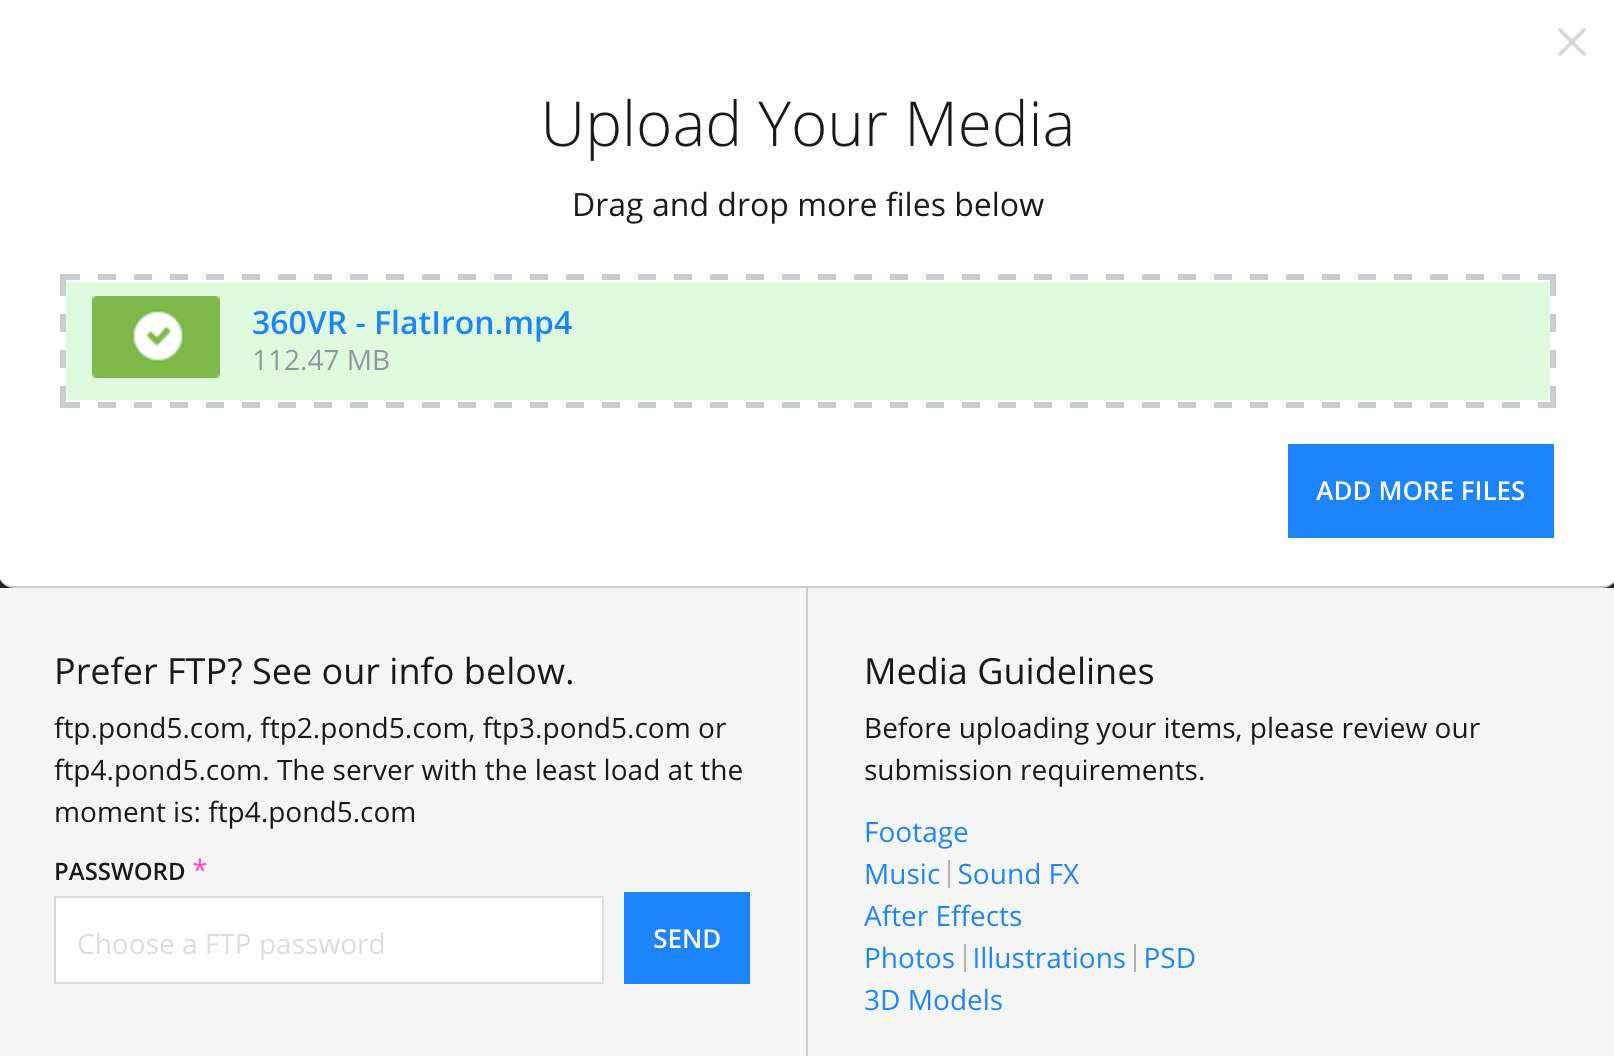 Upload Your Media